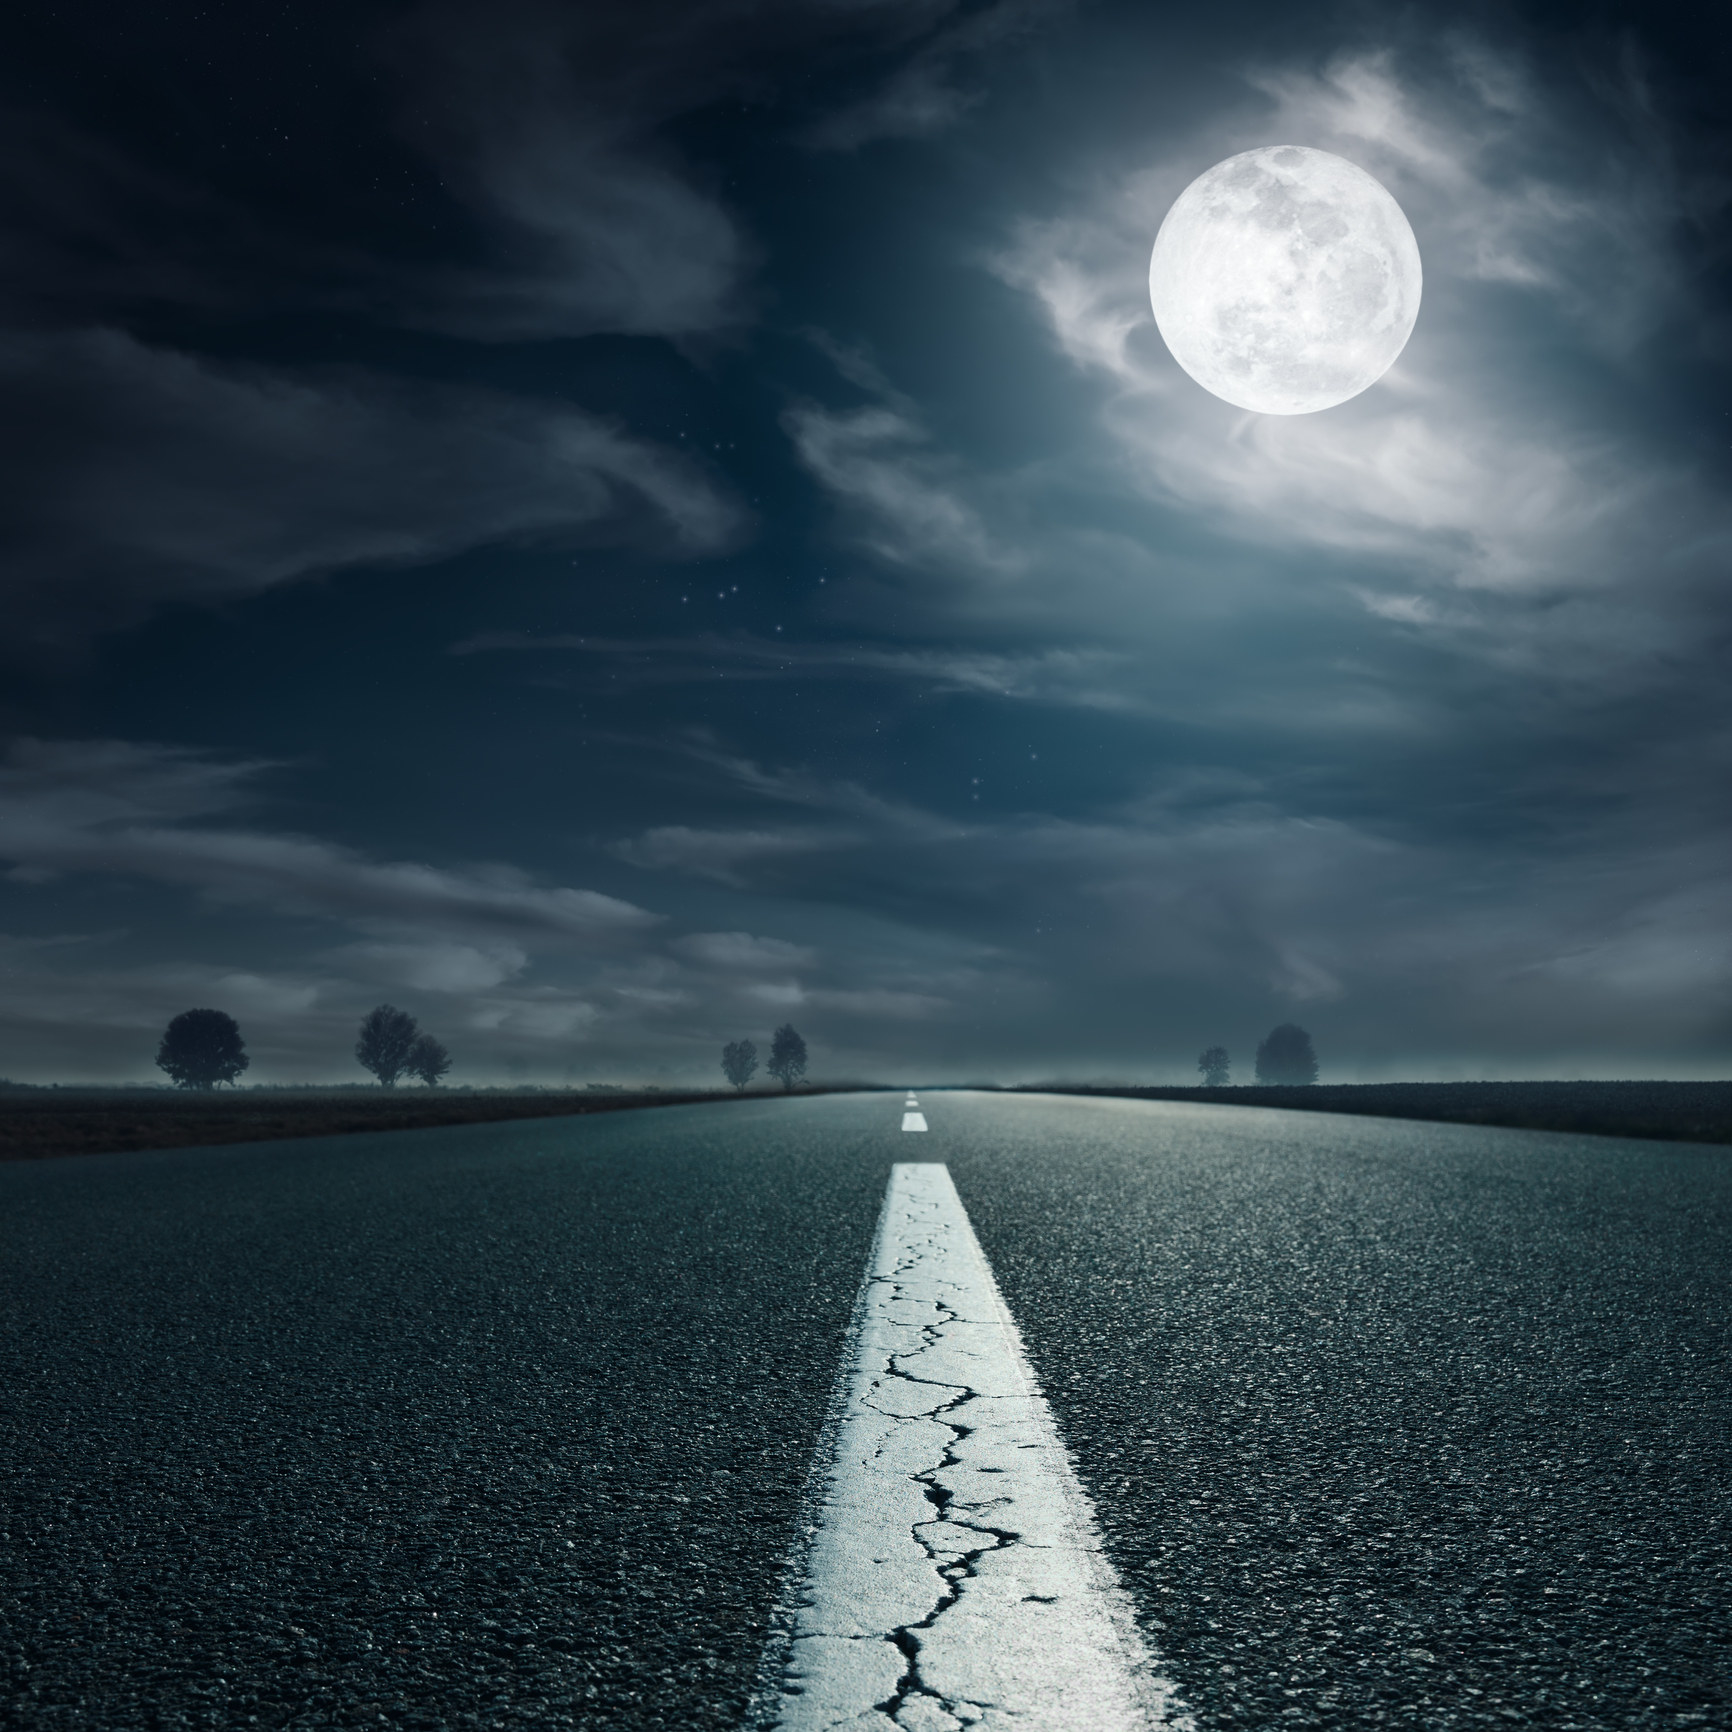 An eerie, empty road at night with a full moon in the sky